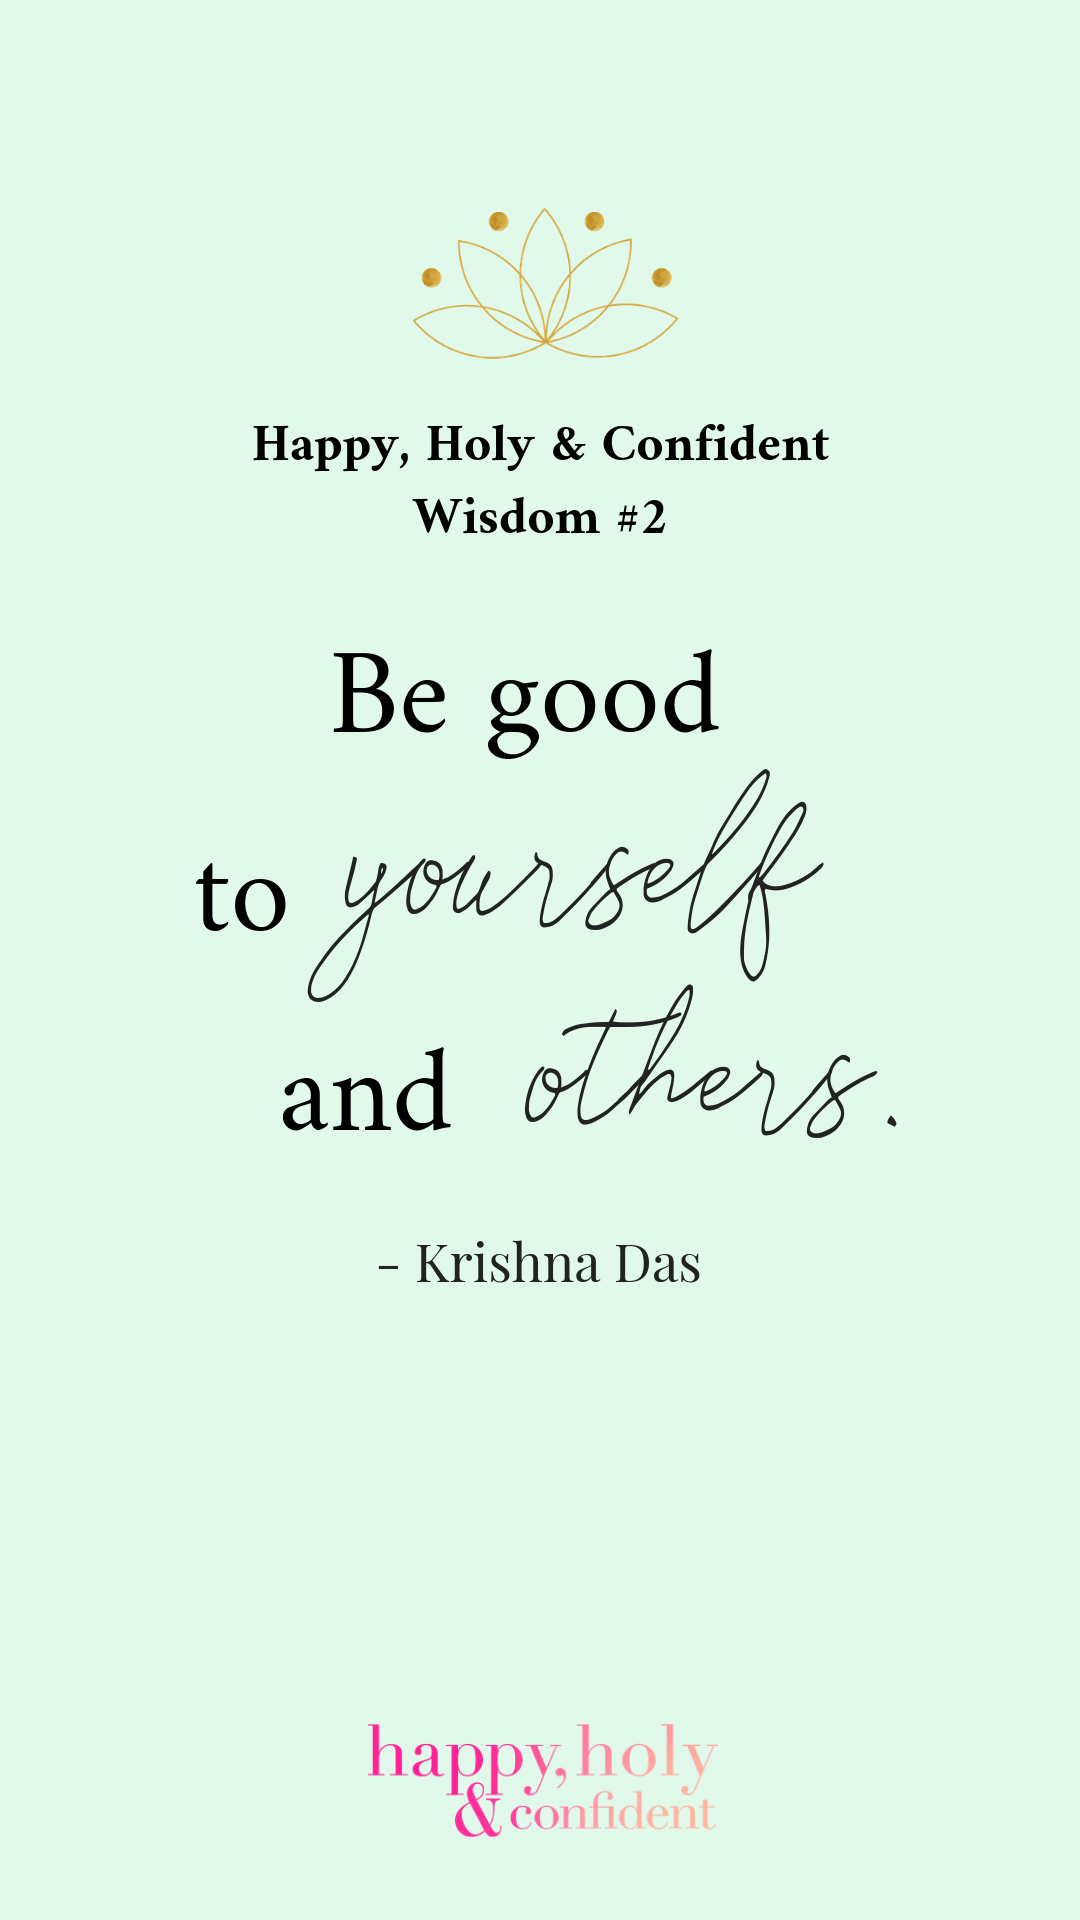 Be good to yourself and others